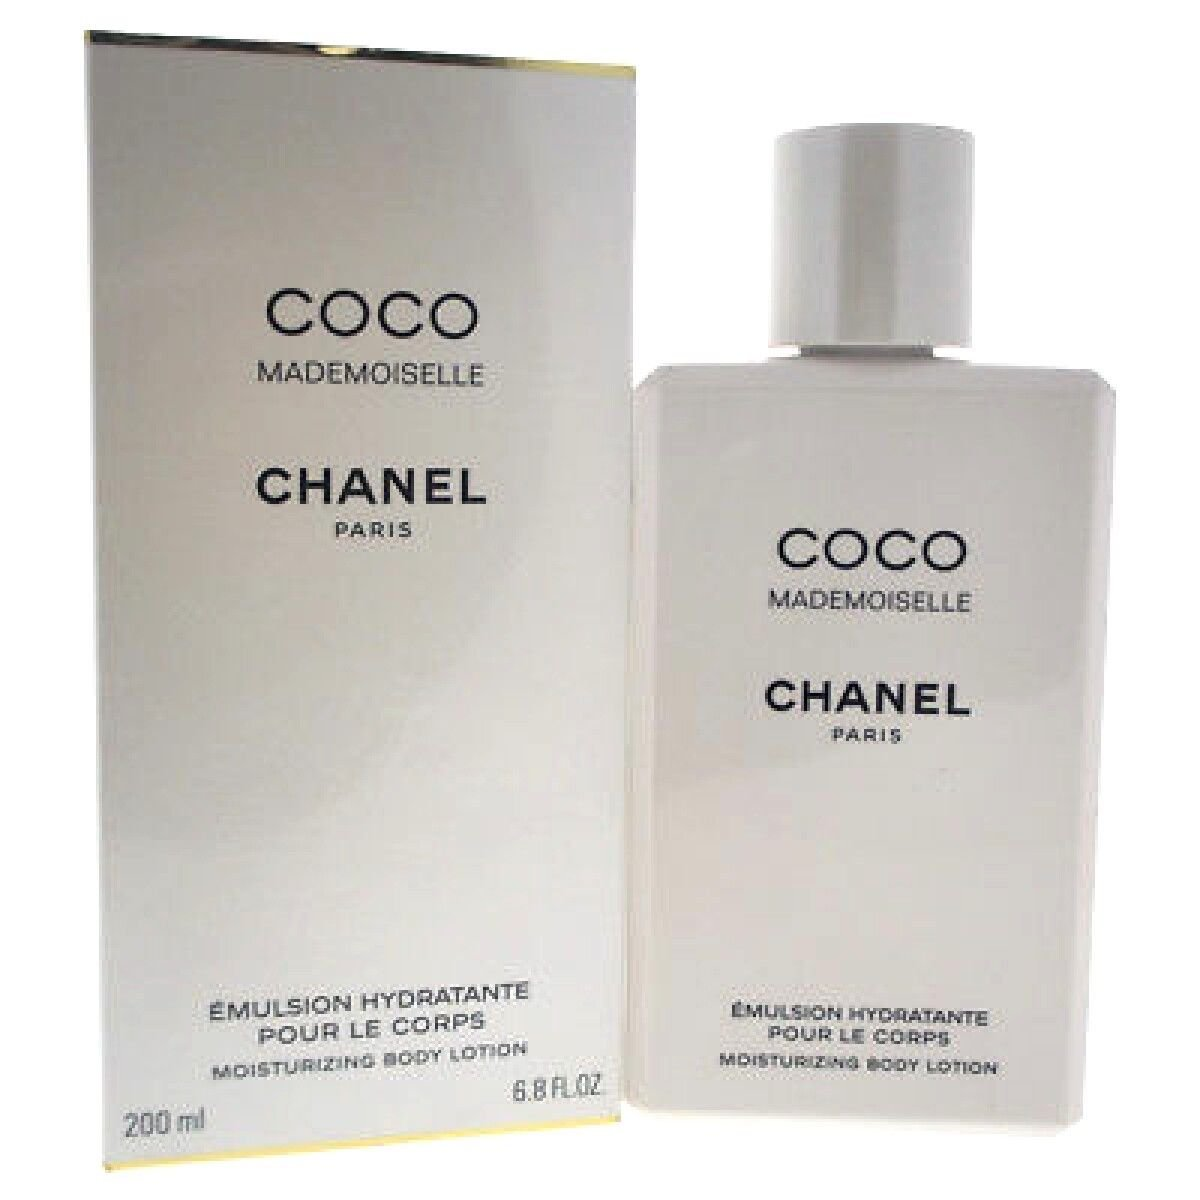 Coco Mademoiselle by C h a n e l for Women - 6.8 oz Moisturizing Body Lotion